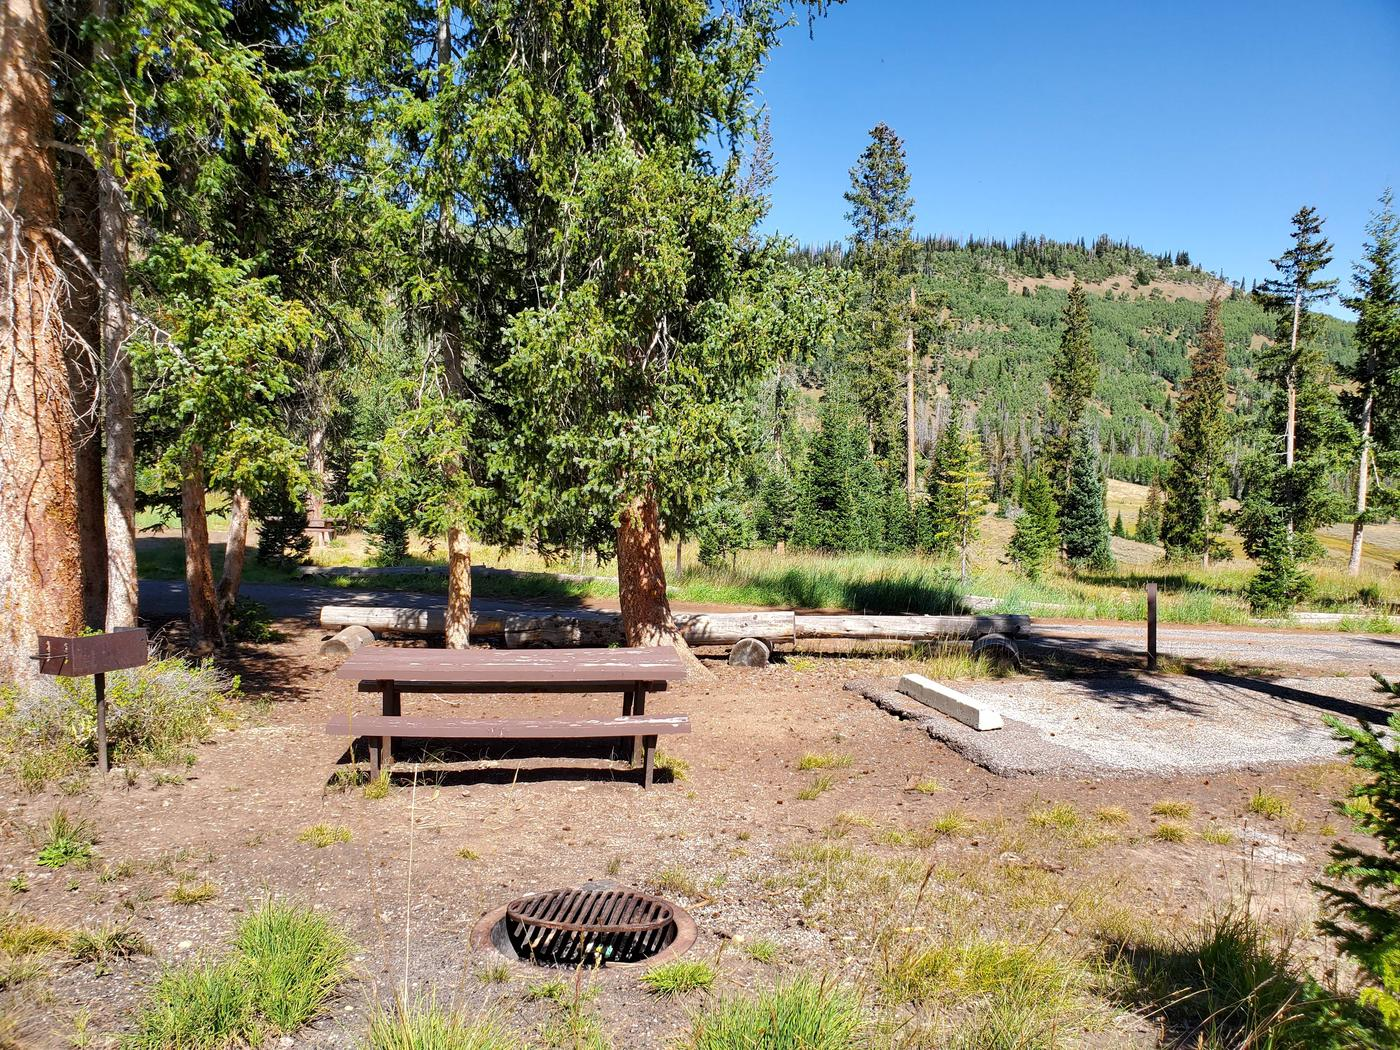 Flat Canyon Campground Site #10aFlat Canyon Campground Site #10